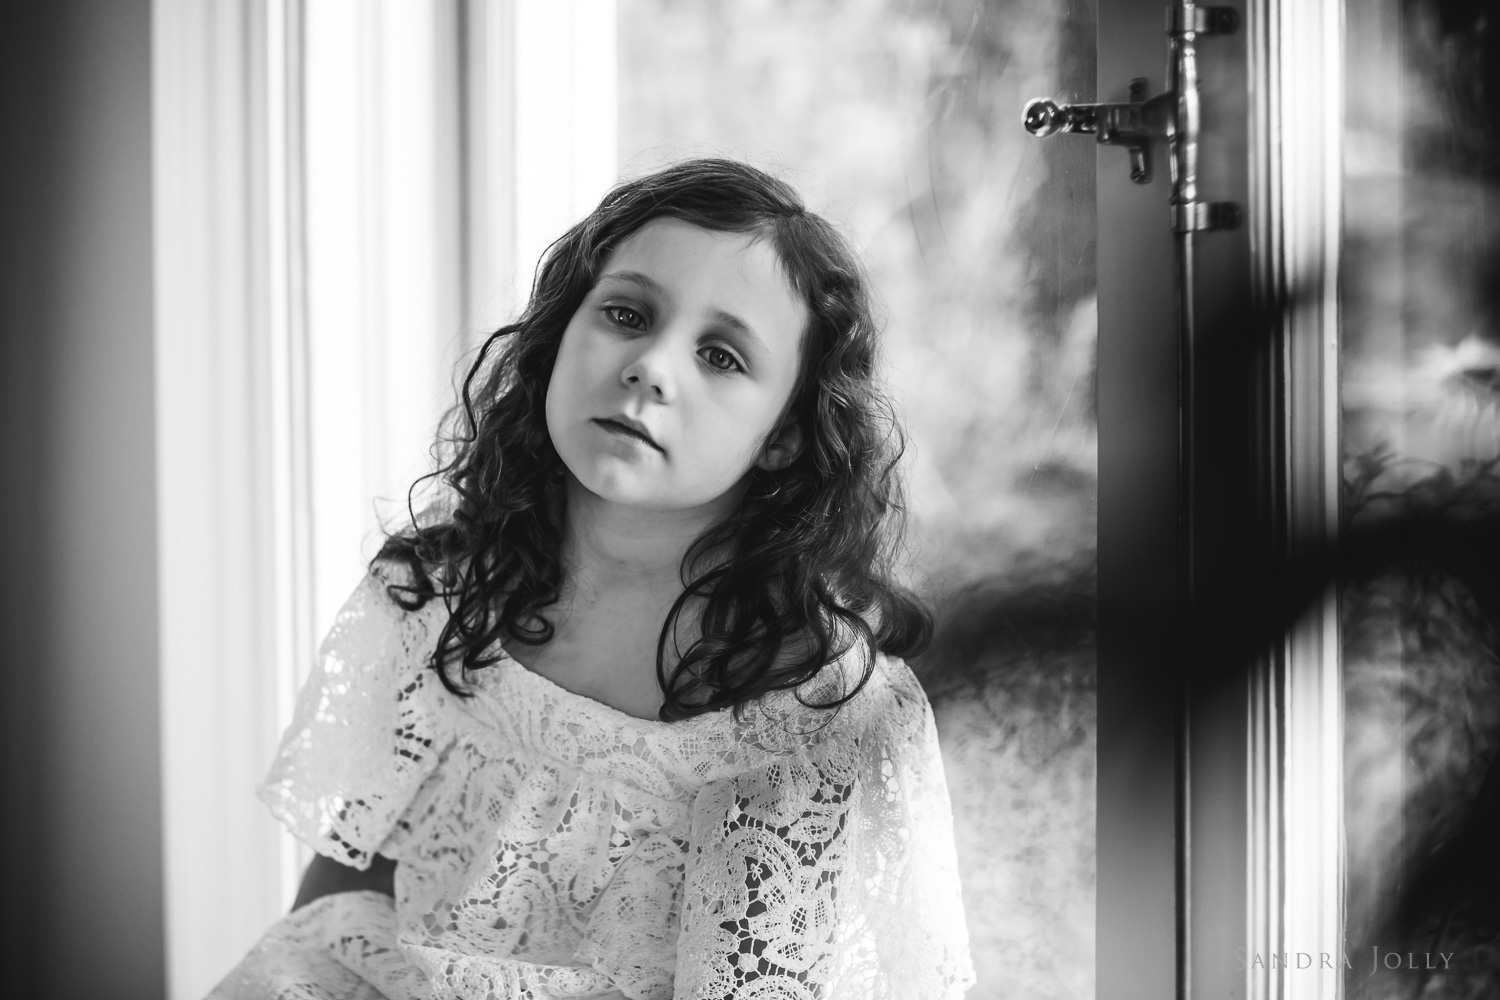 black-and-white-child-portrait-by-stockholm-family-photographer-sandra-jolly.jpg